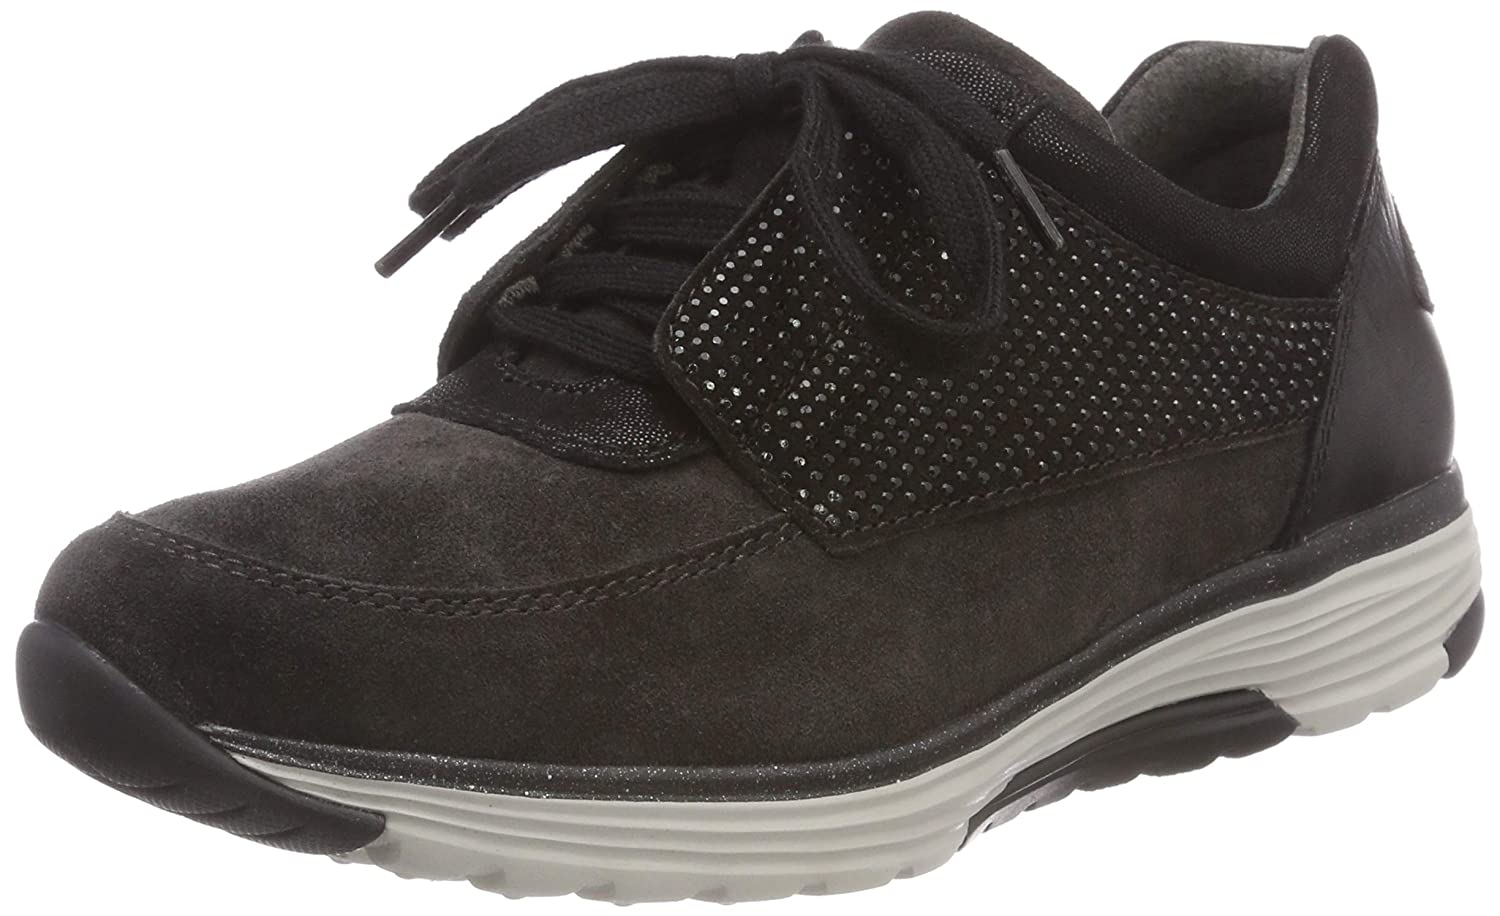 Gabor Shoes Rollingsoft, Derbys Rollingsoft, Femme Gris (Dk Shoes Gris Grey/Schwarz 39) f3aabd2 - fast-weightloss-diet.space